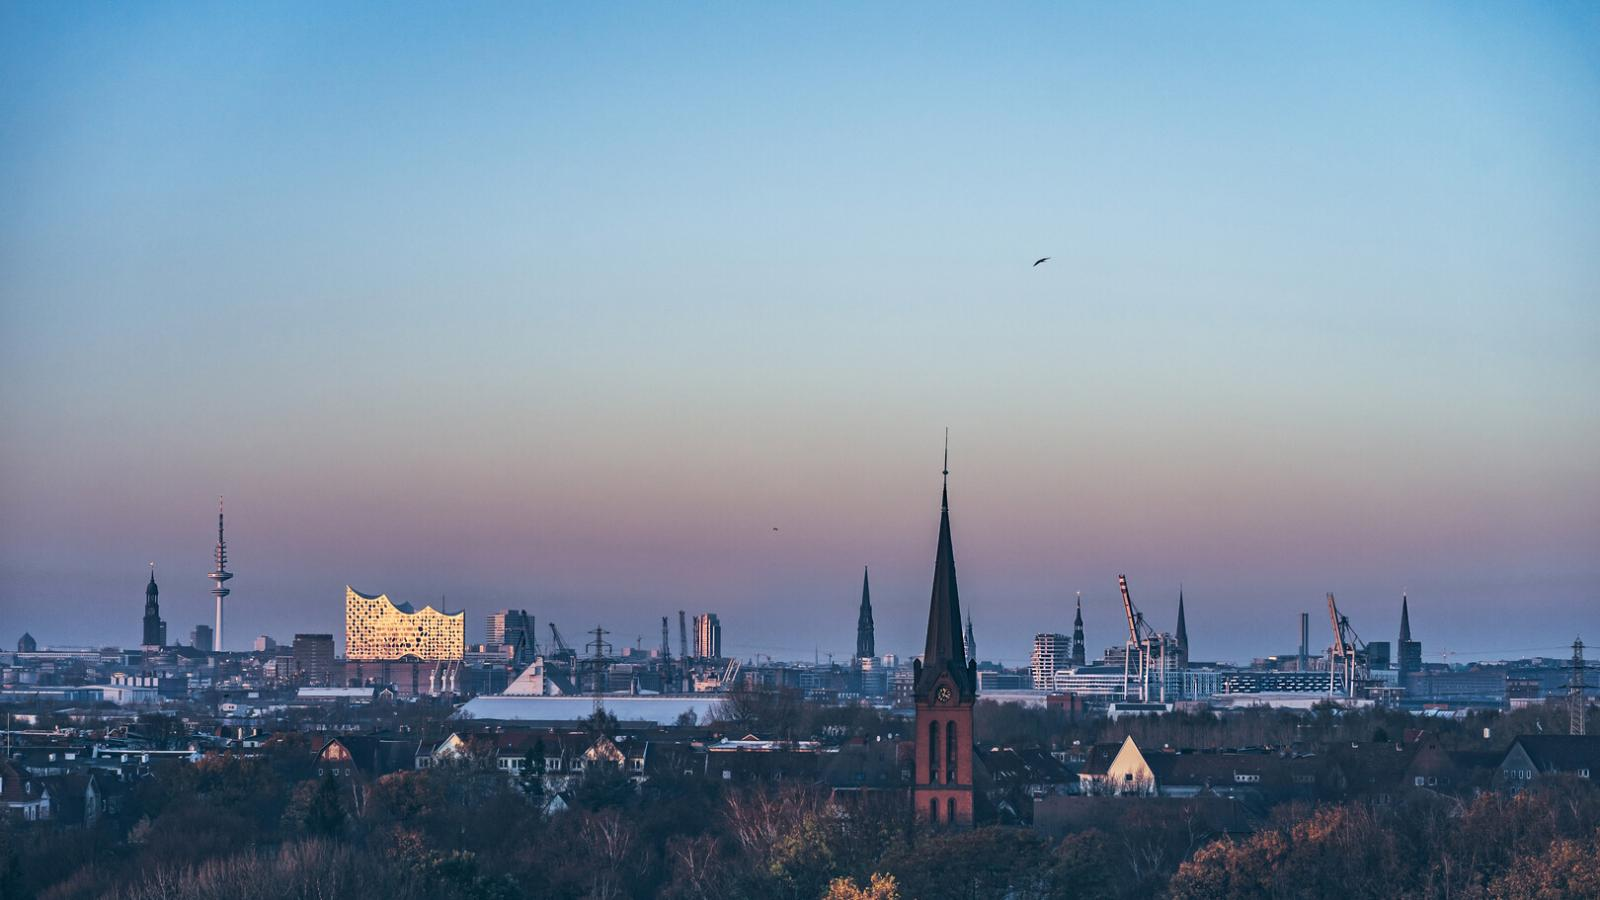 Hamburg's skyline